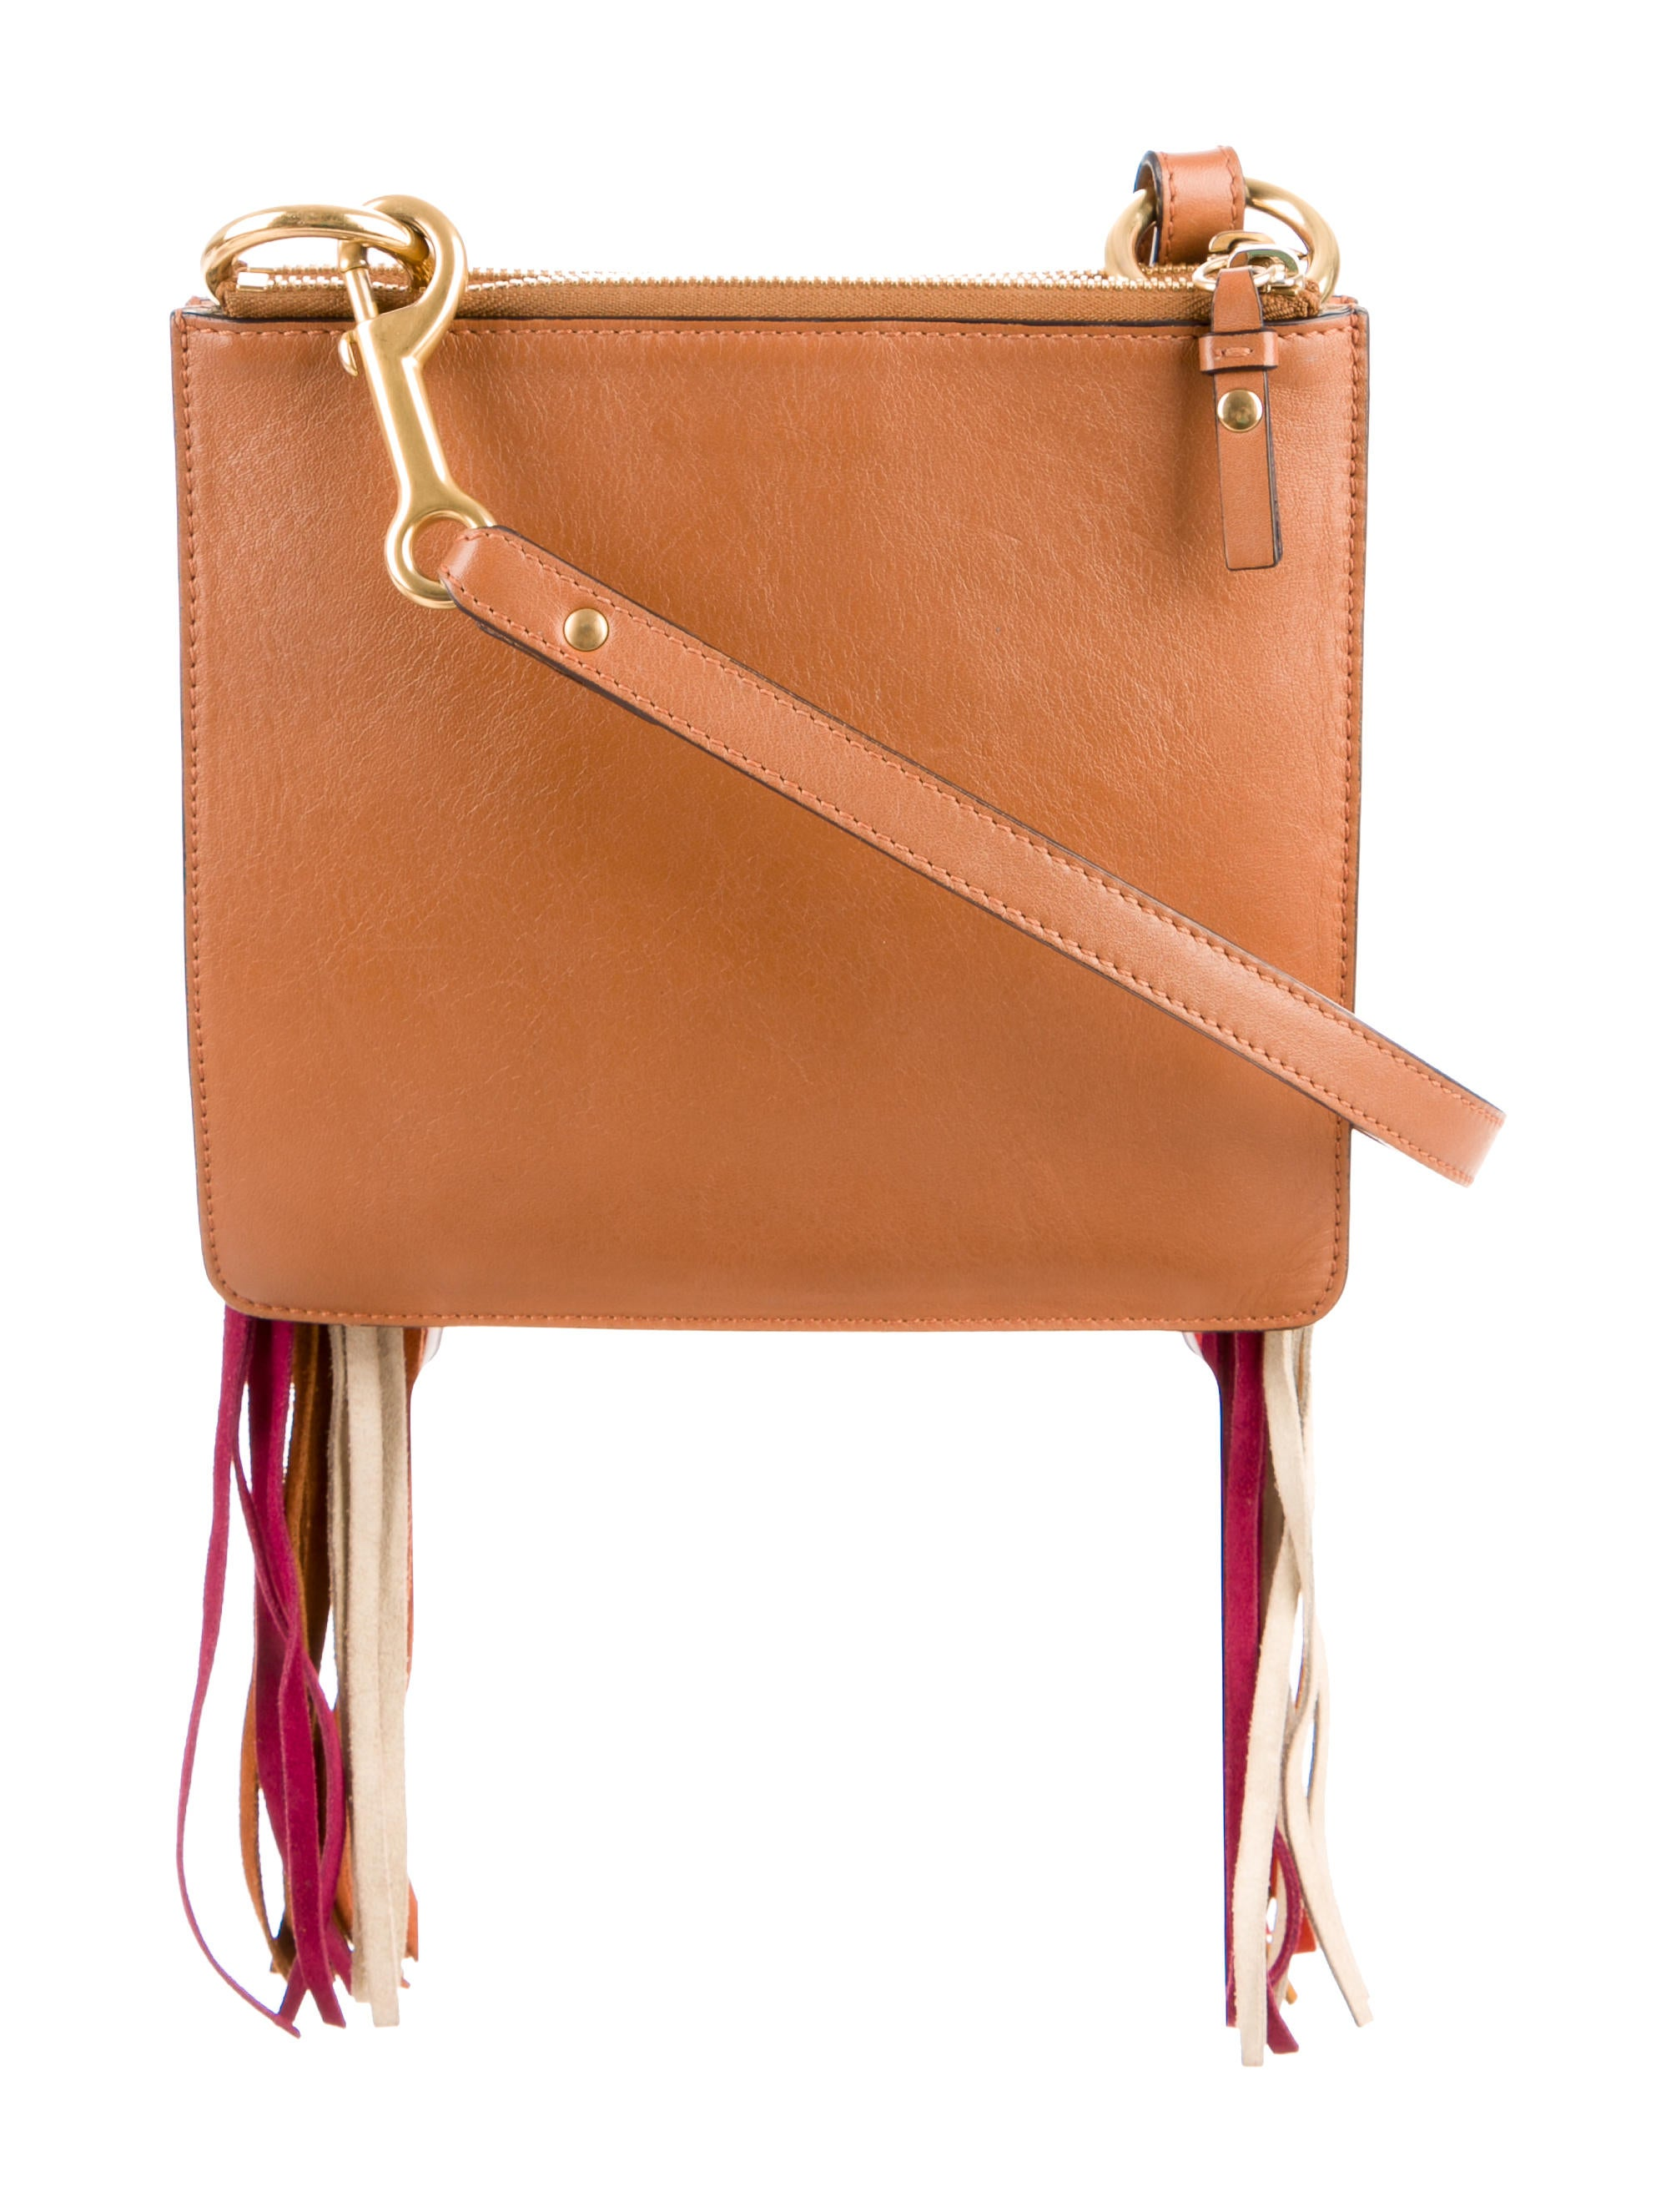 Rebecca Minkoff Handbags. Swap out your signature satchel or crossbody with something from our collection of Rebecca Minkoff handbags. Make a bold statement with one in a unique color or with artistic details that you can't find anywhere else, or go for something more understated and traditional.